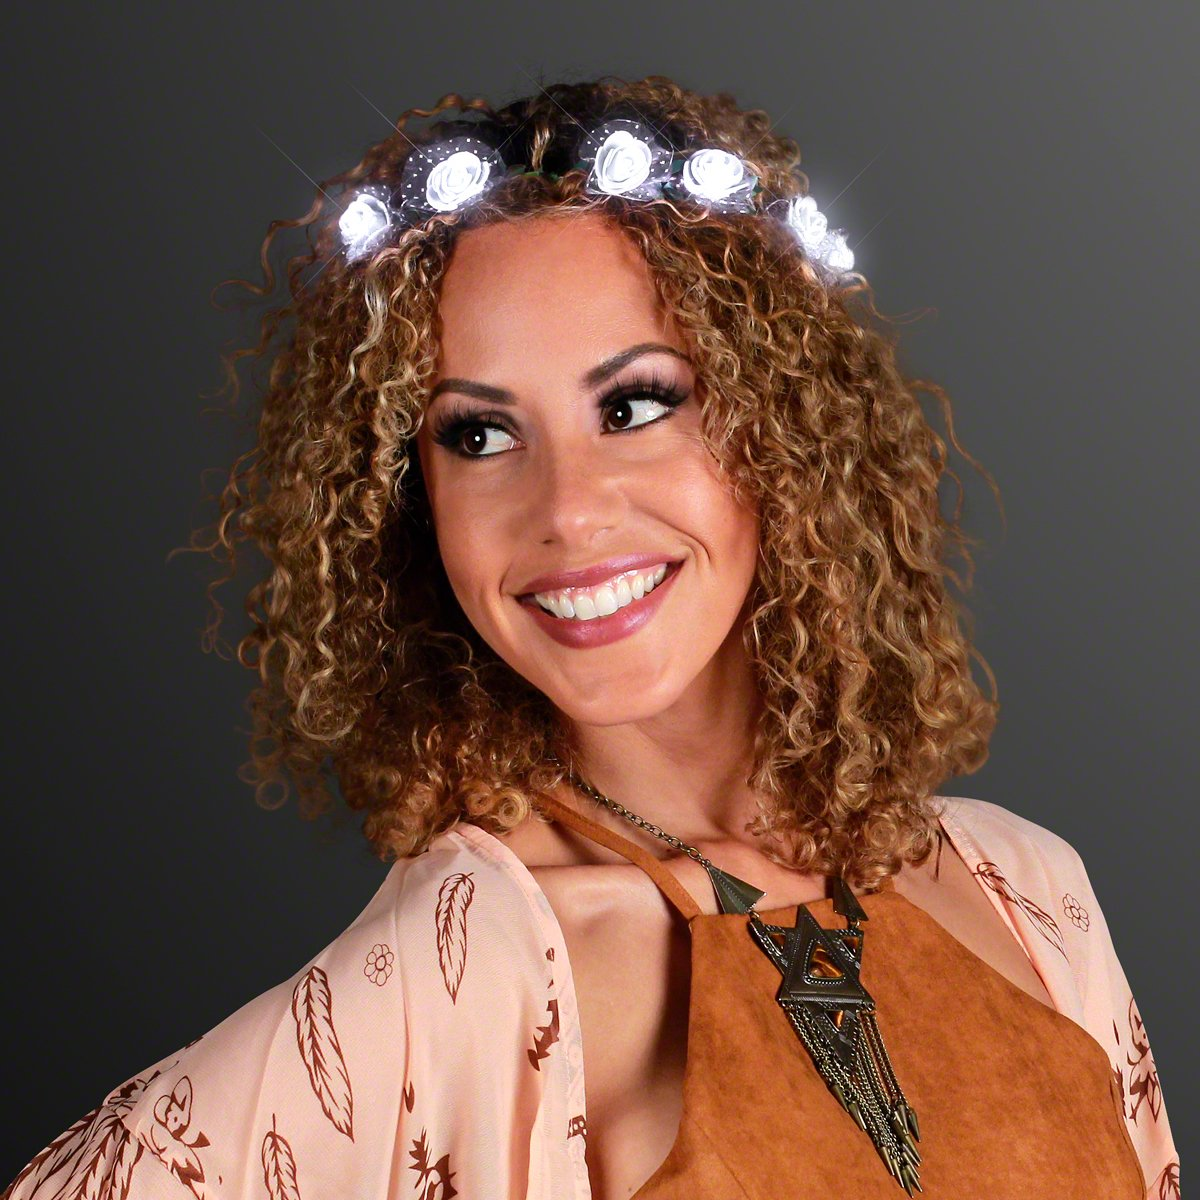 Indianapolis Mall White Light Up Rosebud Fashion Flower Headband Lights Crown with LED